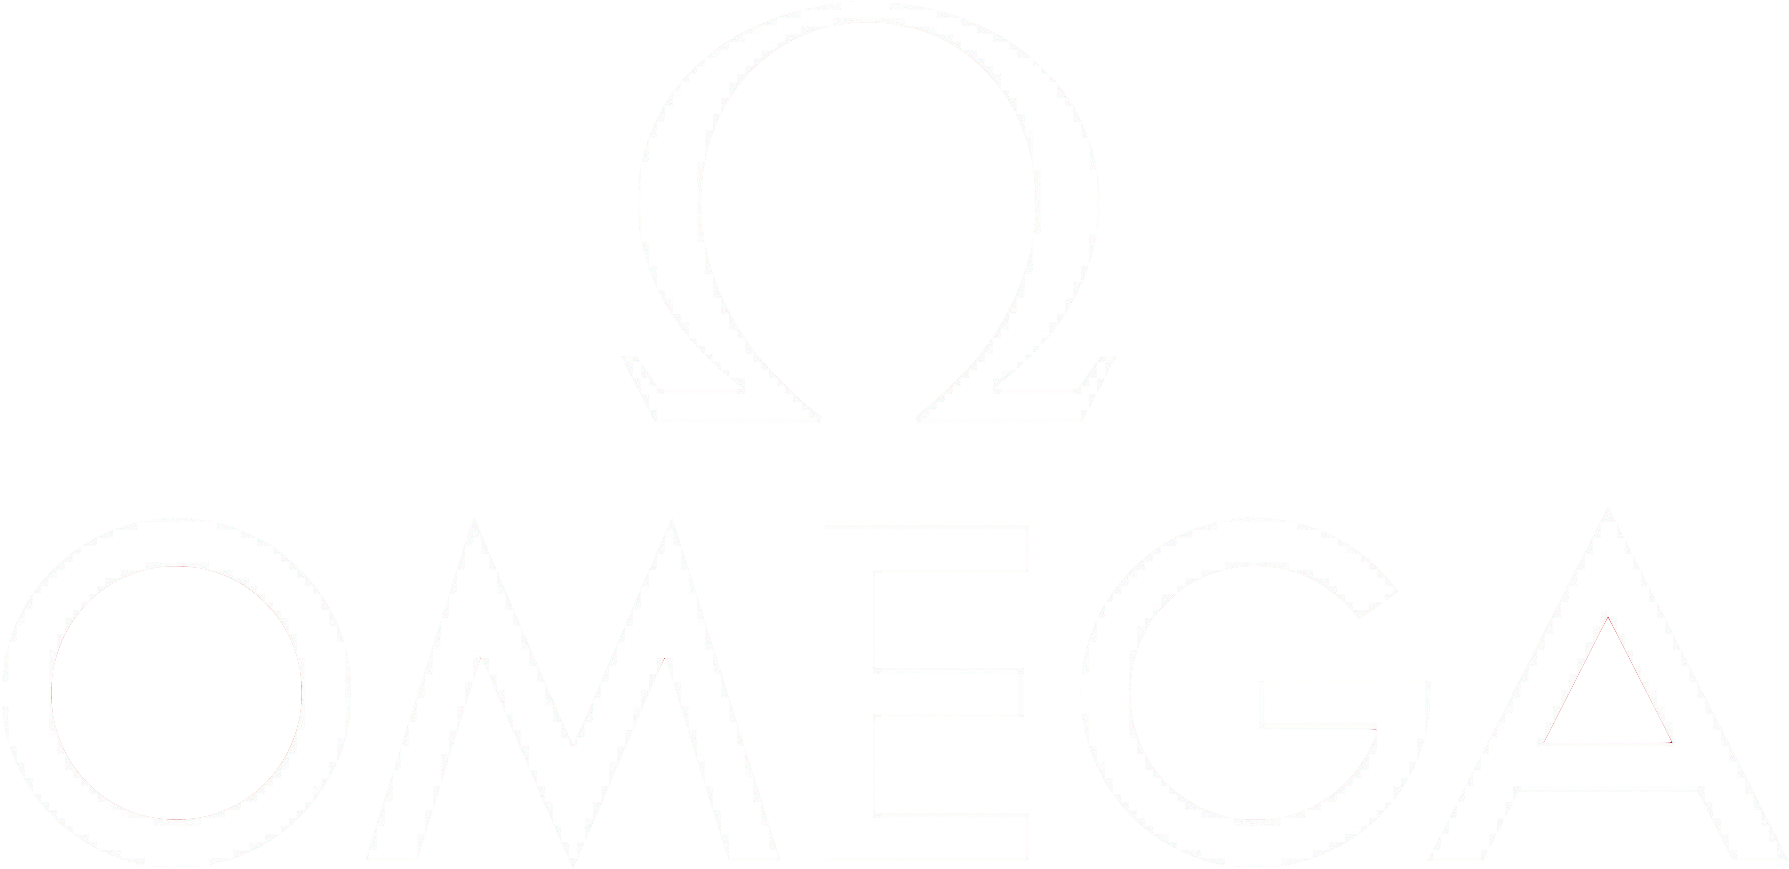 Download Omega Wateches Logo Omega Watch Logo Png Png Image With No Background Pngkey Com